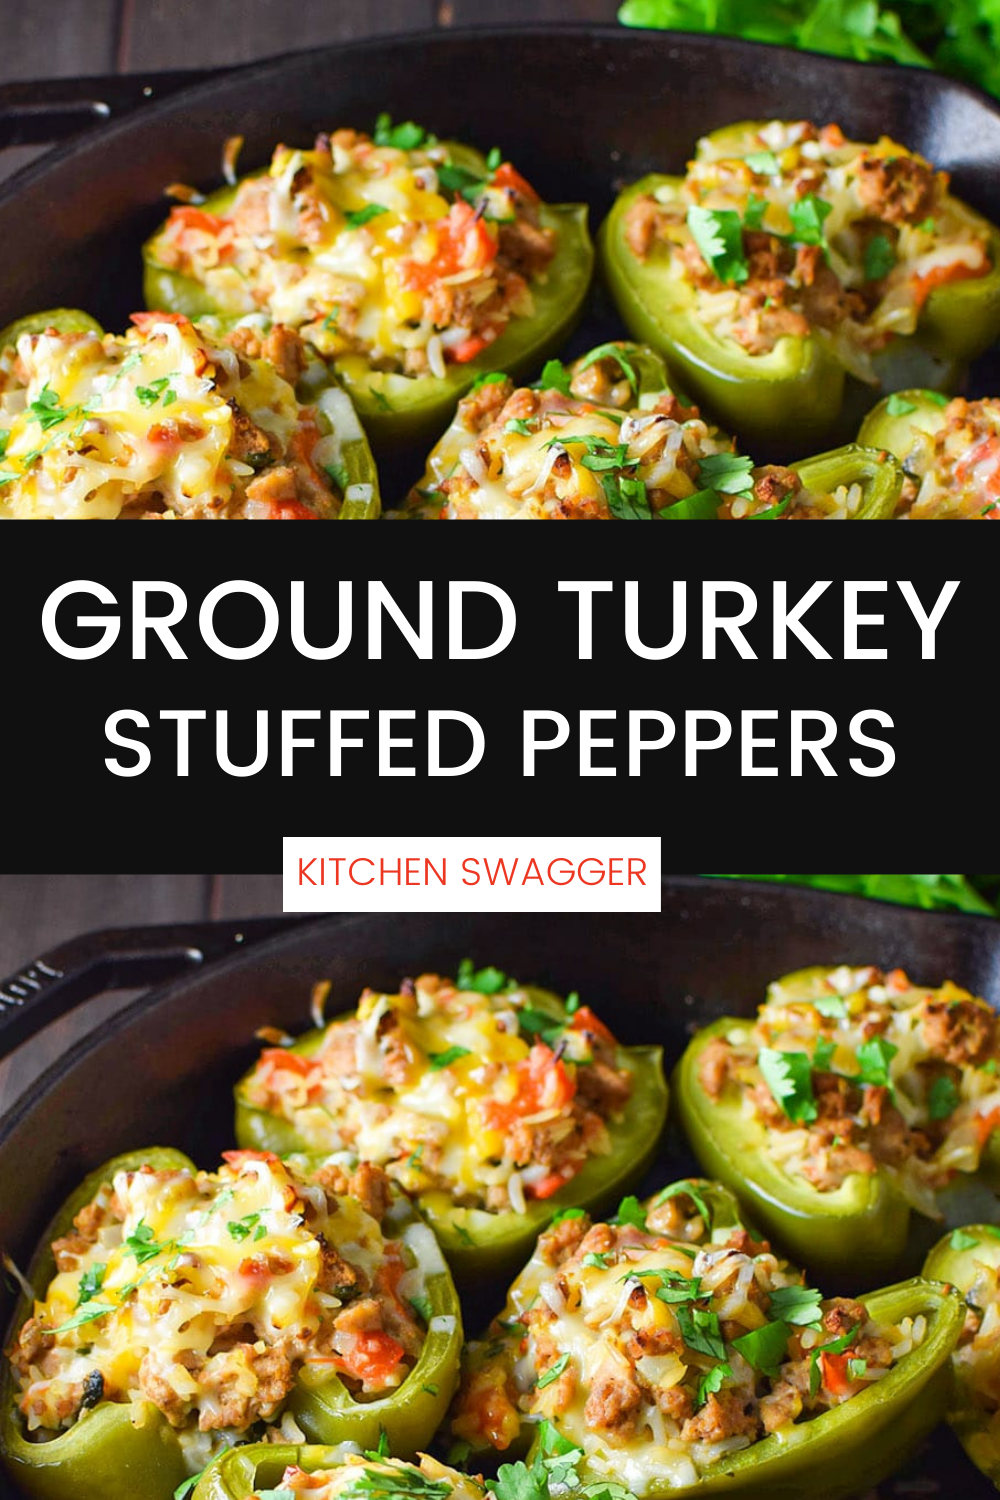 Ground Turkey Stuffed Peppers In 2020 Stuffed Peppers Ground Turkey Stuffed Peppers Stuffed Peppers Turkey